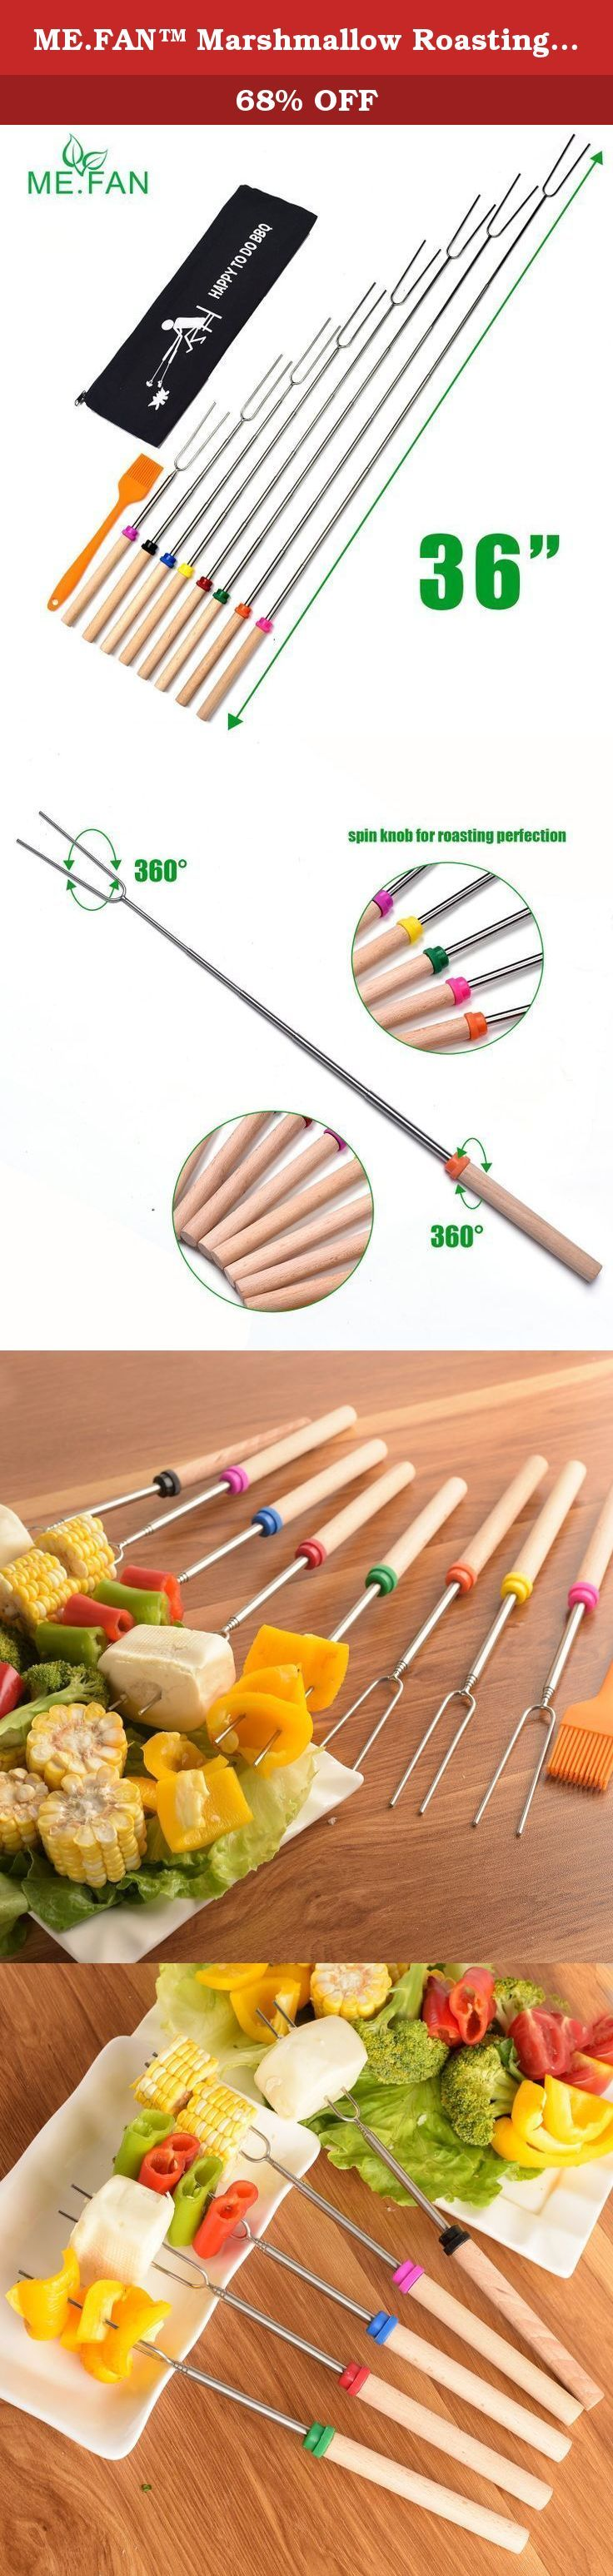 ME.FAN™ Marshmallow Roasting Sticks - Telescoping Smores Skewers & Campfire Hot Dog Forks - Set of 8 Camping Accessories Travel Grill 32 In - FREE Canvas Pouch + Silicone Basting Brush. Are You Ready To Do The Delicious Grilled Food And Create Fun-Filled Memories Around The Campfire With Your Family And Friends? NOW! TRY OUR BEST MARSHMALLOW ROASTING FORKS, YOU WILL LOVE THEM WHEN YOU FIRST USE. Why Are You Choose ME.FAN Telescoping Roasting Forks? First: BPA free and FDA approved…